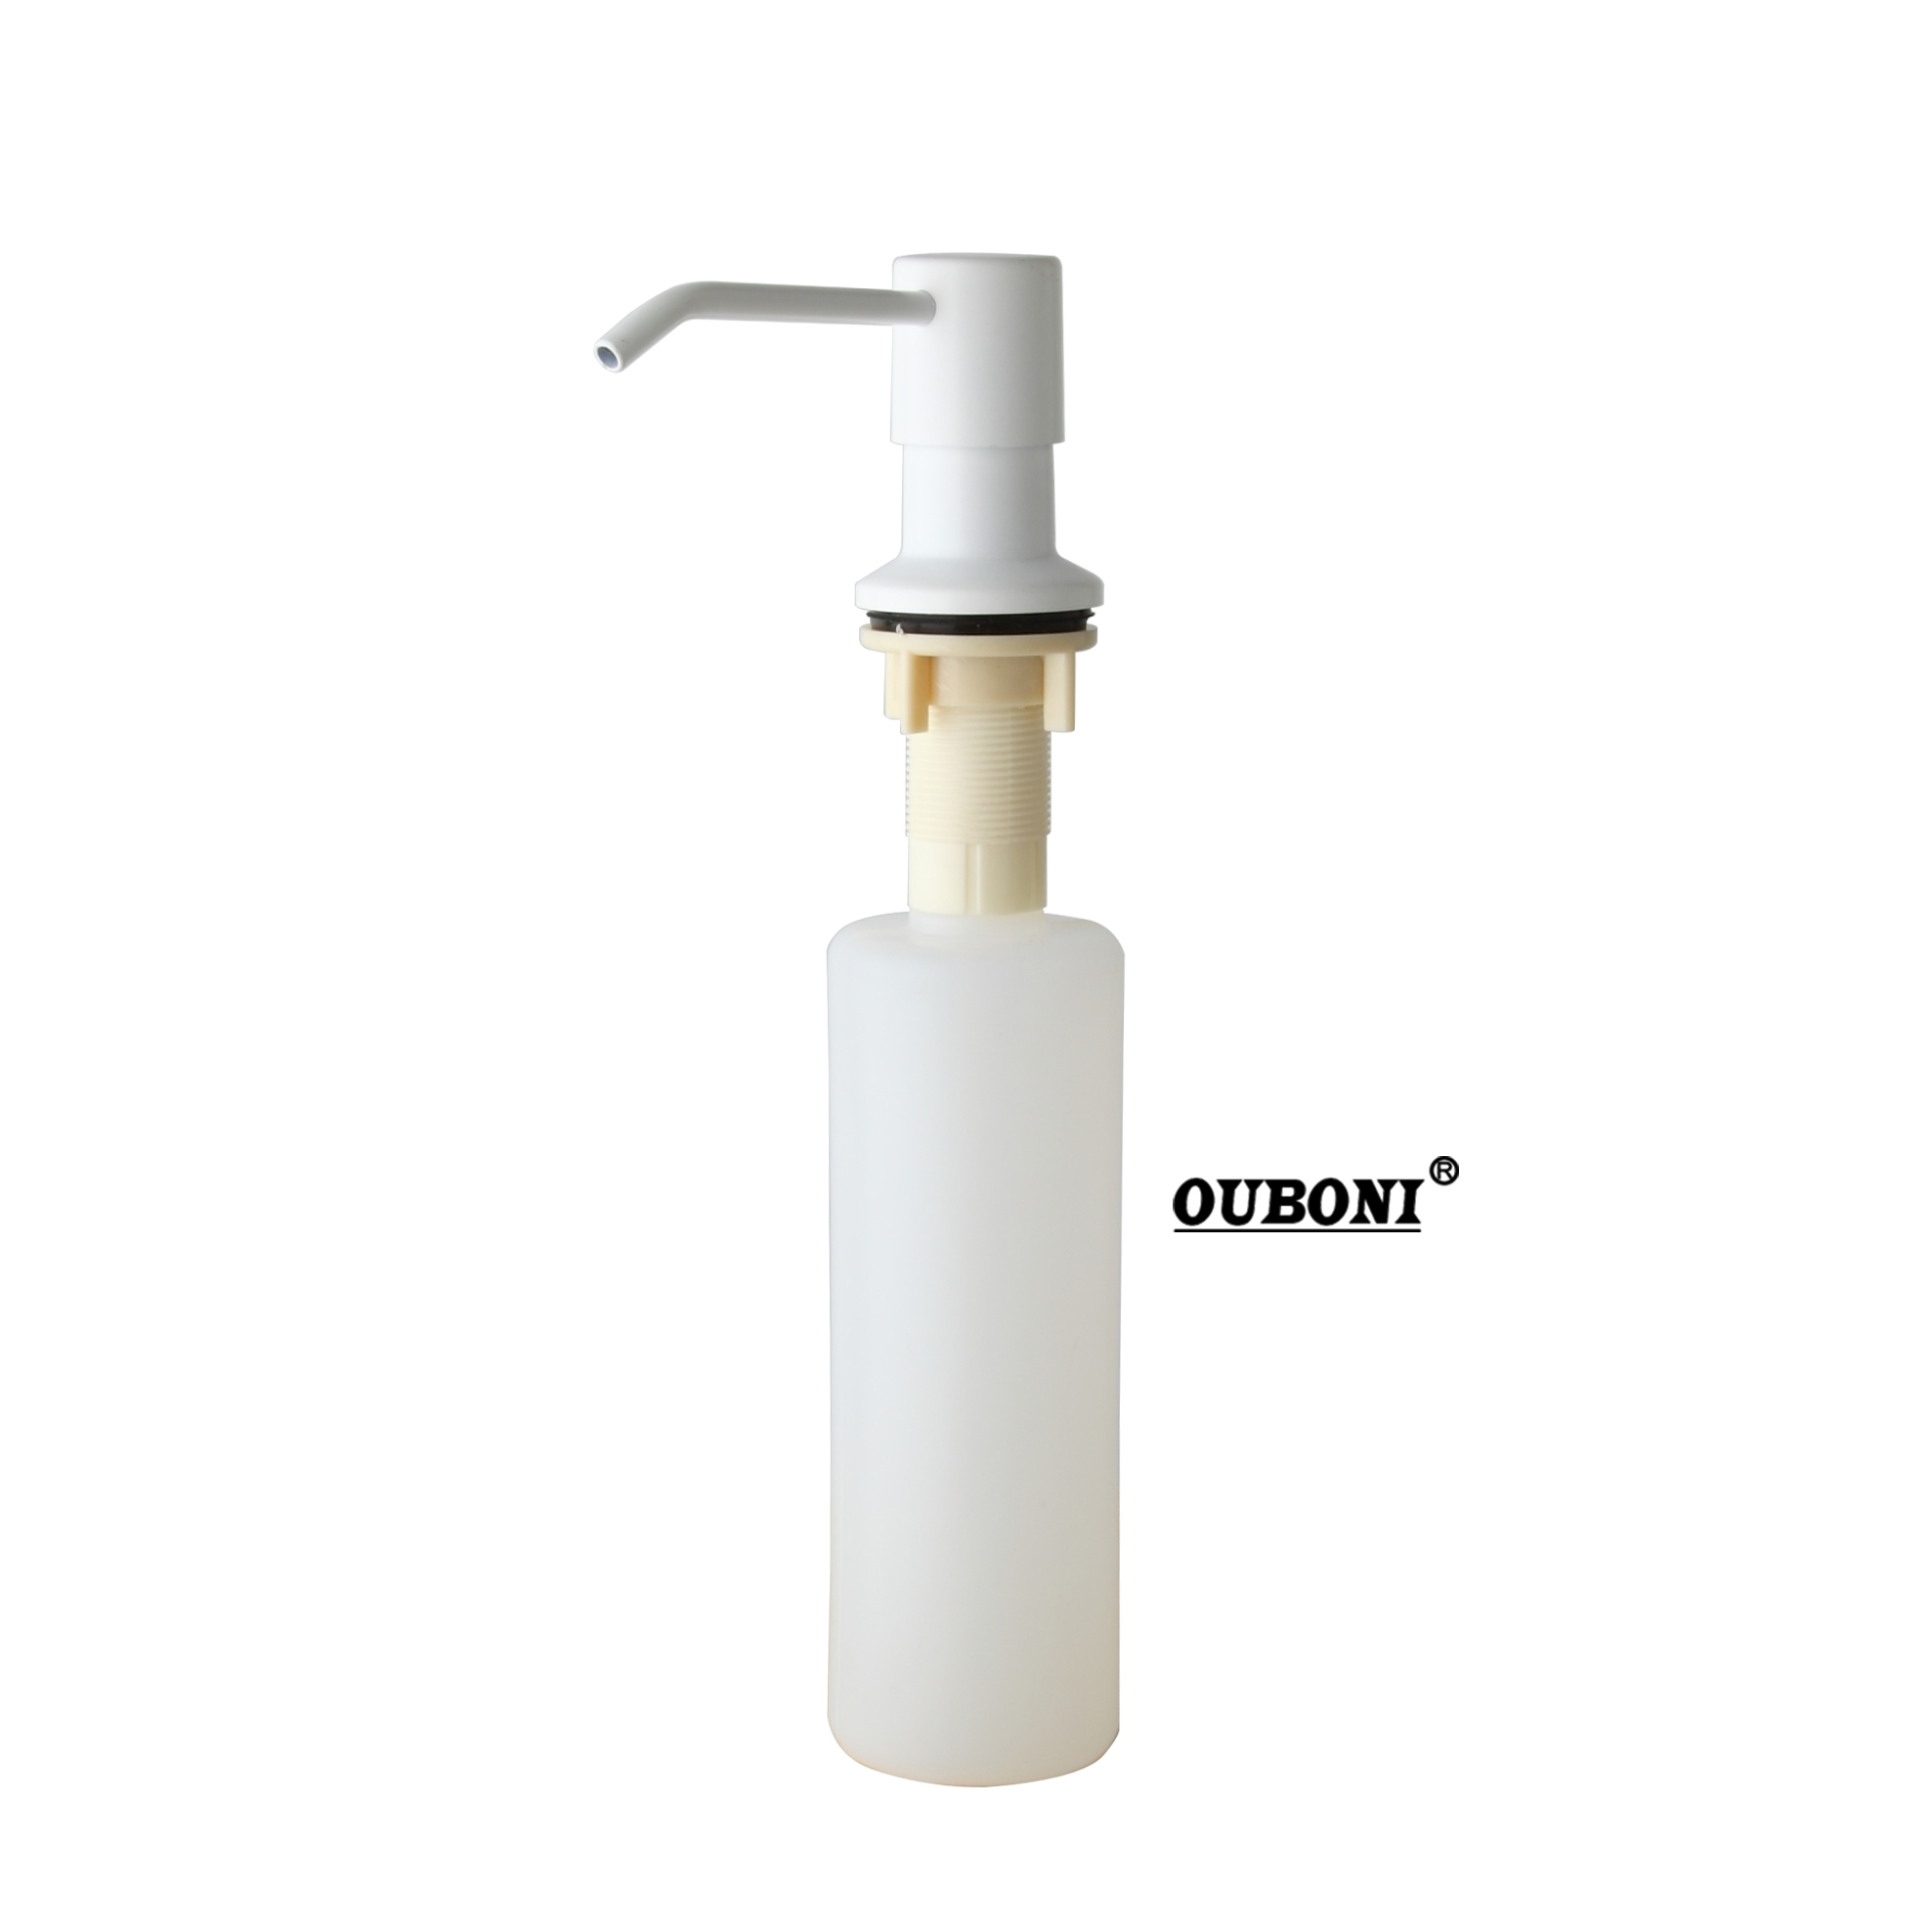 ABS White Painting Soap Dispenser Kitchen Bathroom Sink Faucet Shampoo Shower Lotion New Liquid Soap Dispenser kitchen bathroom sink soap lotion dispenser head stainless steel abs bottle